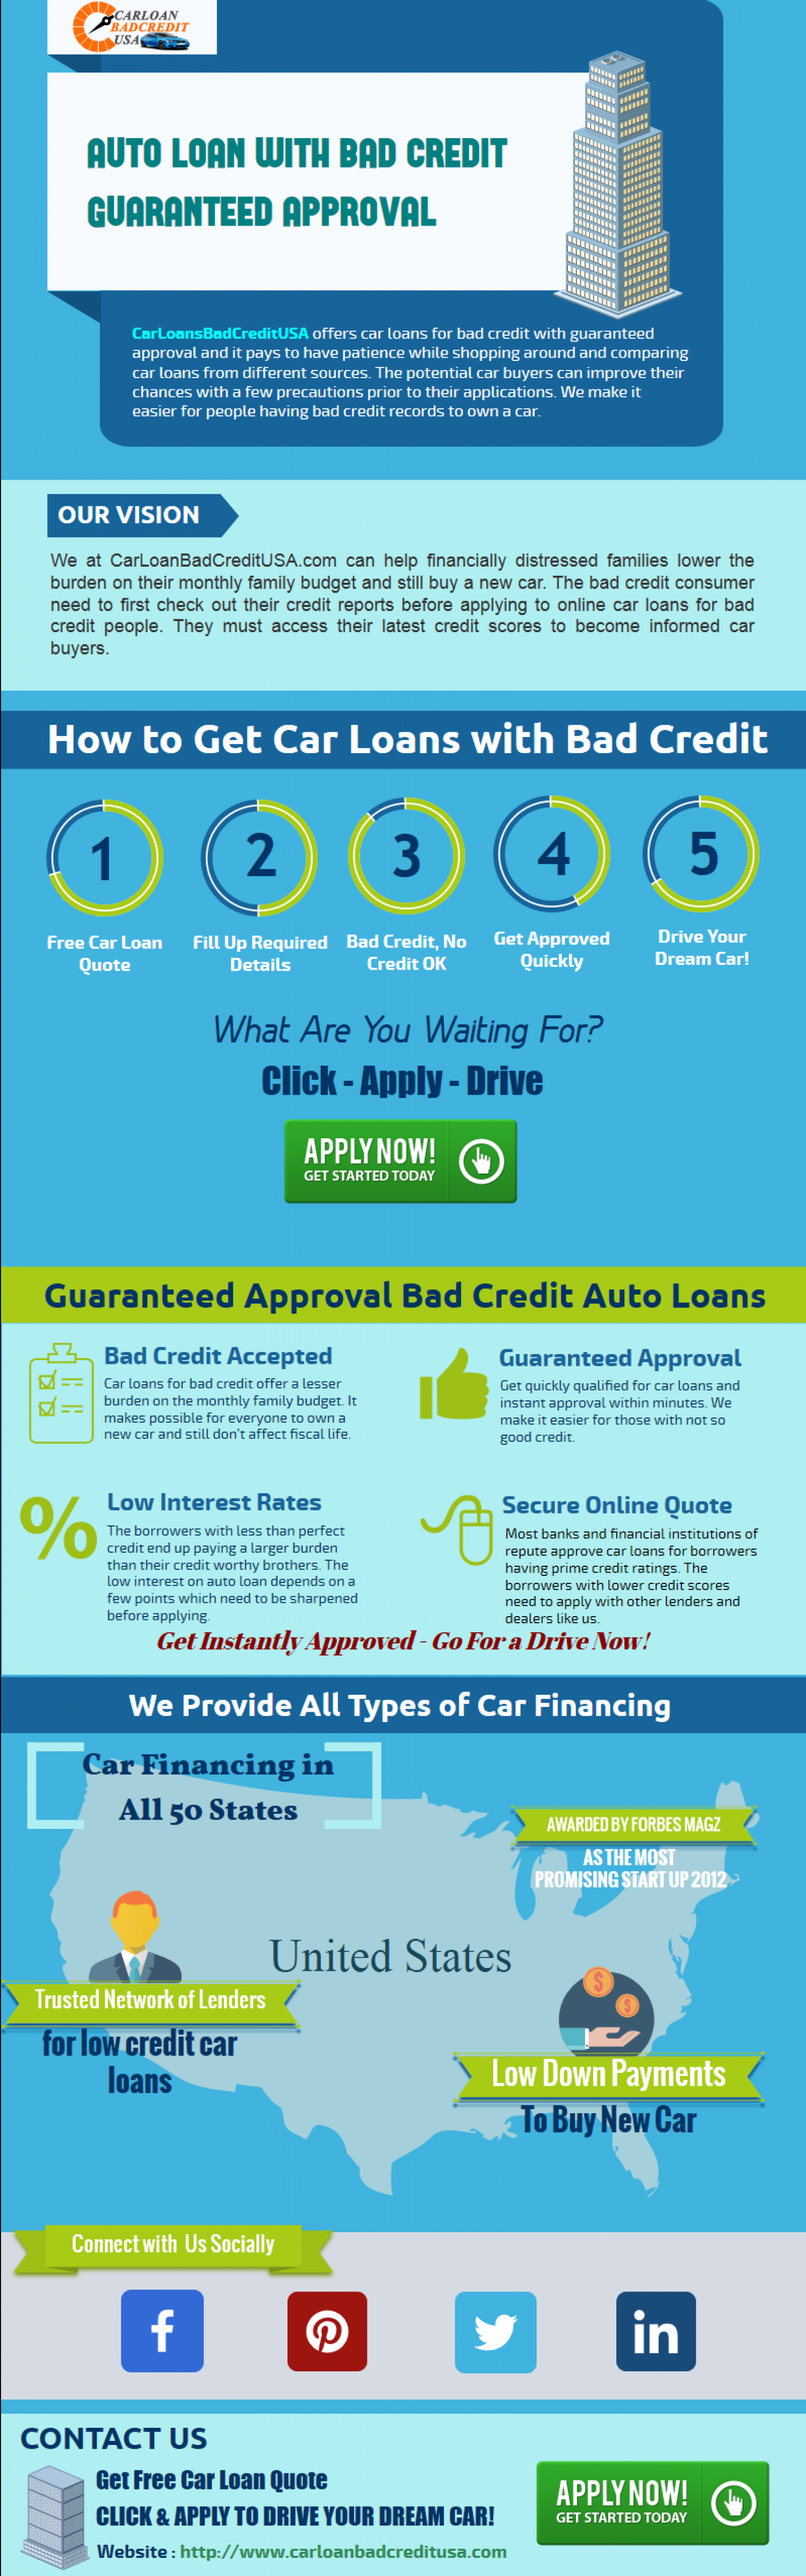 How to Get Auto Loan with Bad Credit Guaranteed Approval | Visual.ly